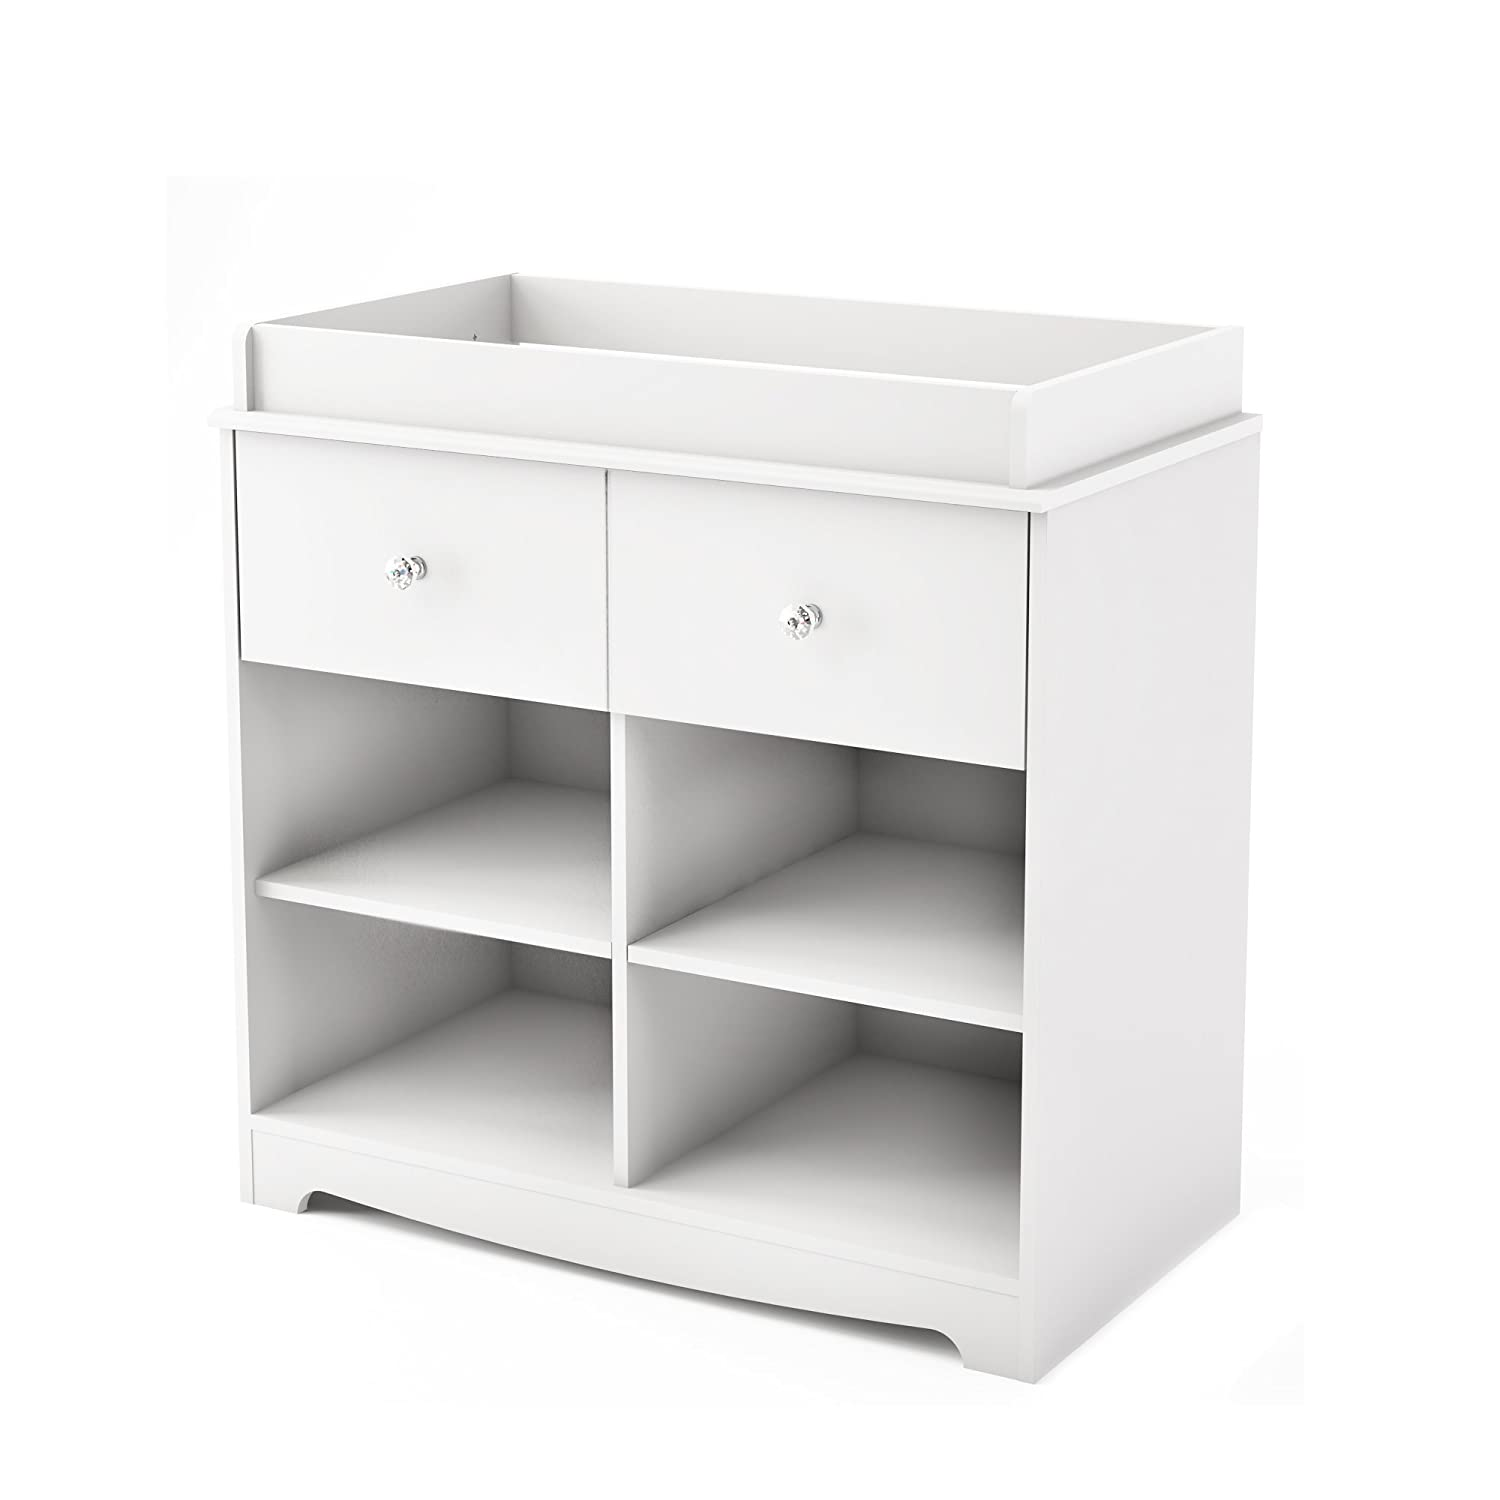 South Shore Furniture South Shore Little Teddy's Changing Table, Pure White 3180337